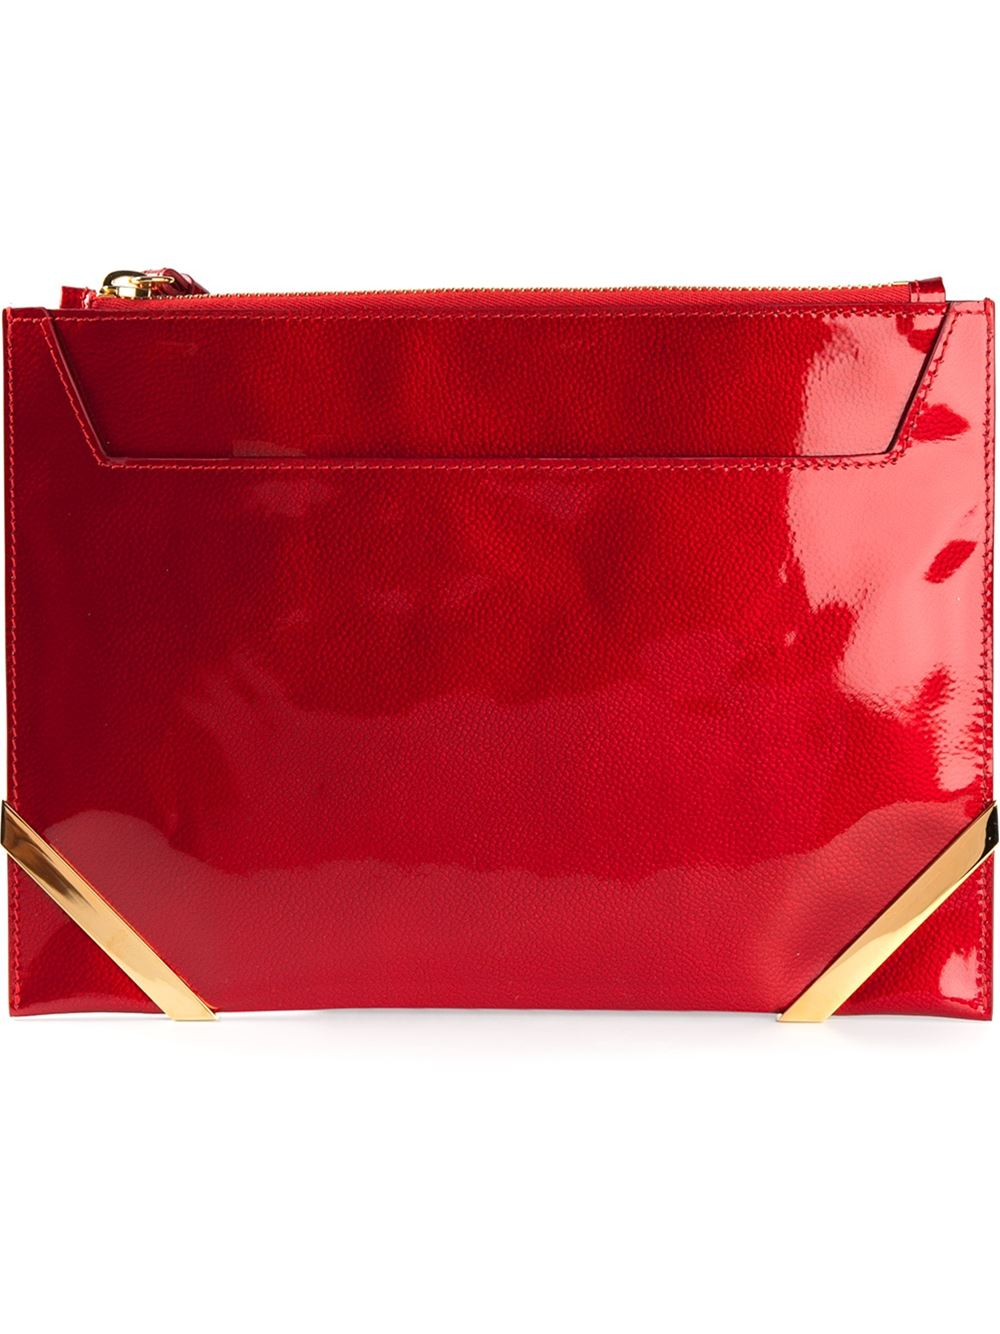 Lyst Pollini Patent Leather Clutch Bag In Red